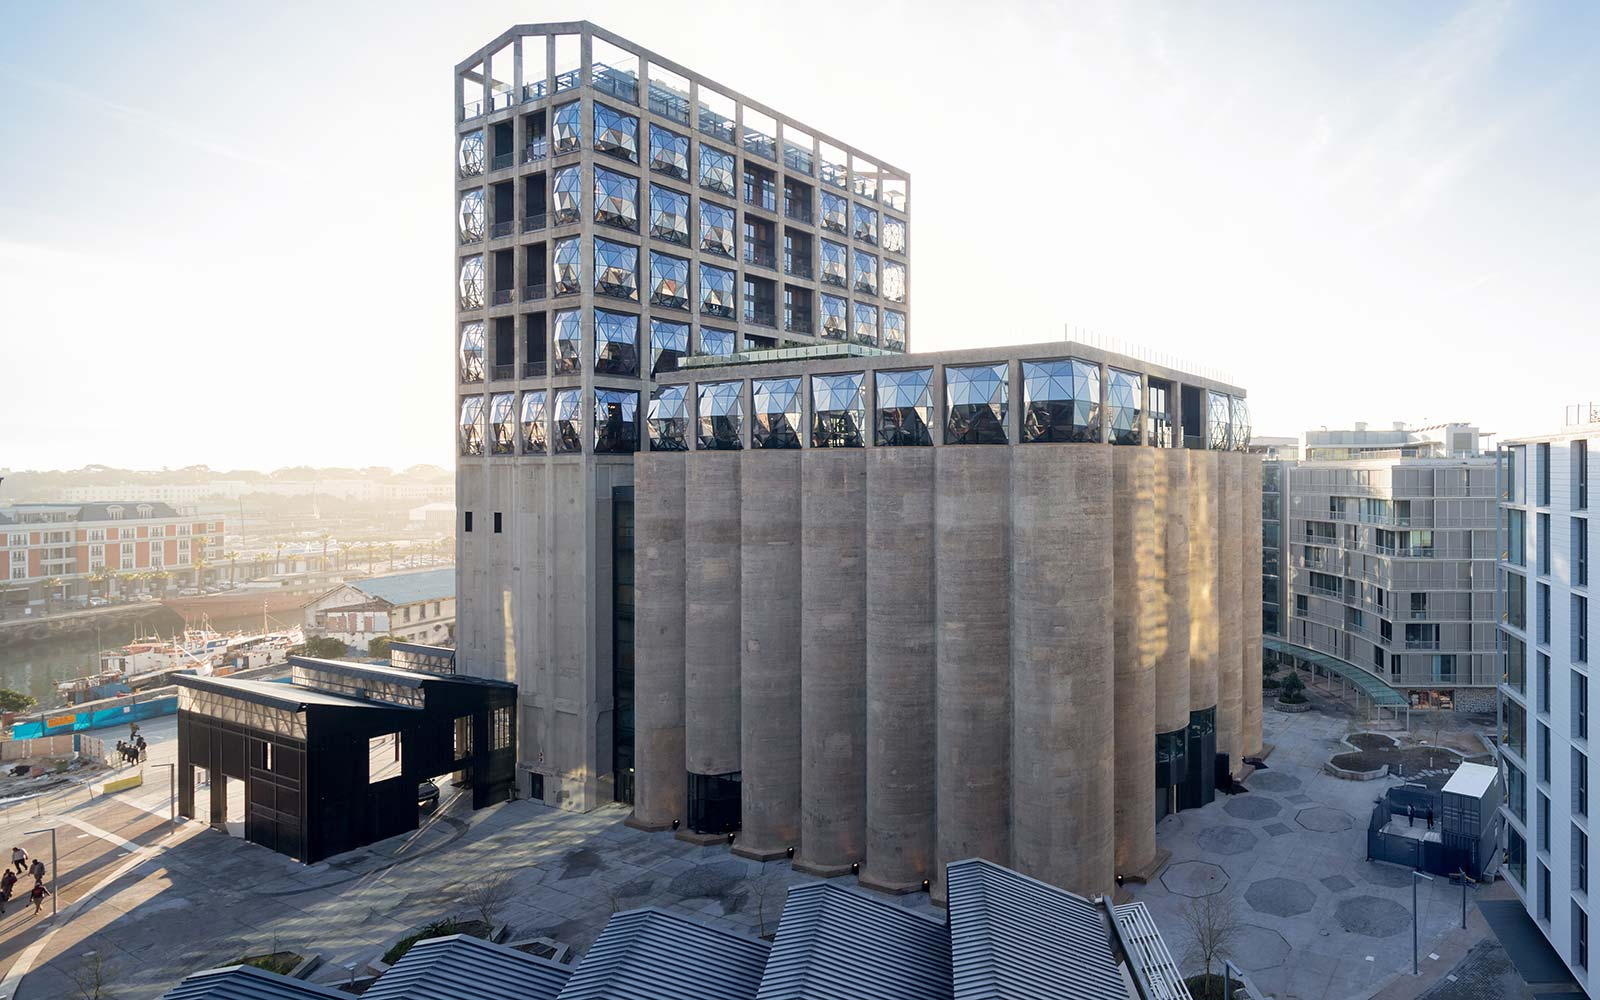 Zeitz Museum of Contemporary African Art Modern MOCAA Cape Town South Africa Silo Square Heatherwick Studio